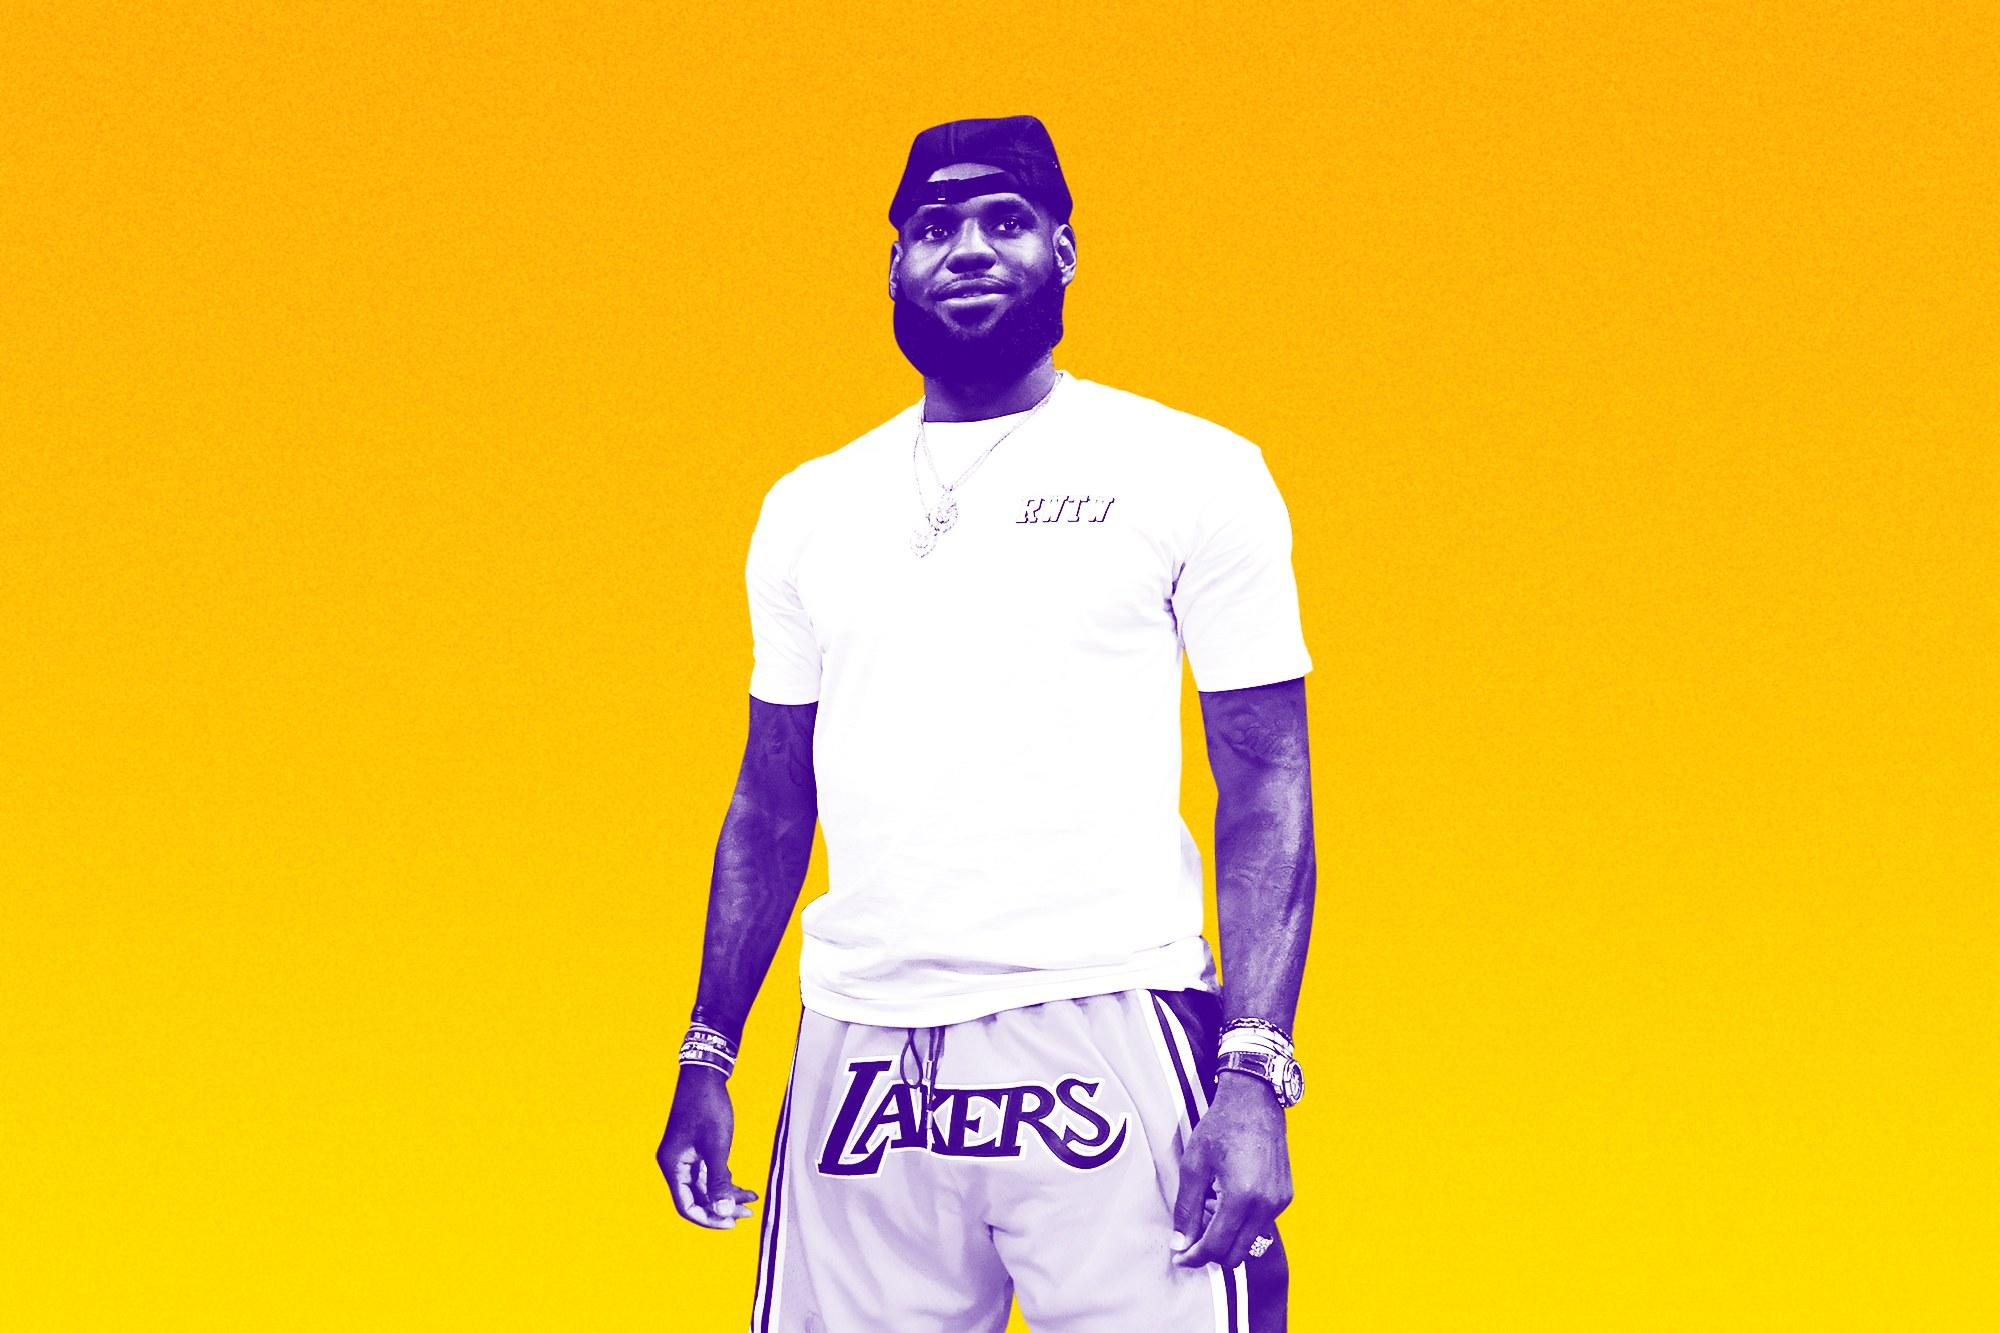 ea2b0bb48 These Images of LeBron James Are a Nightmare, Unless You're a Lakers Fan